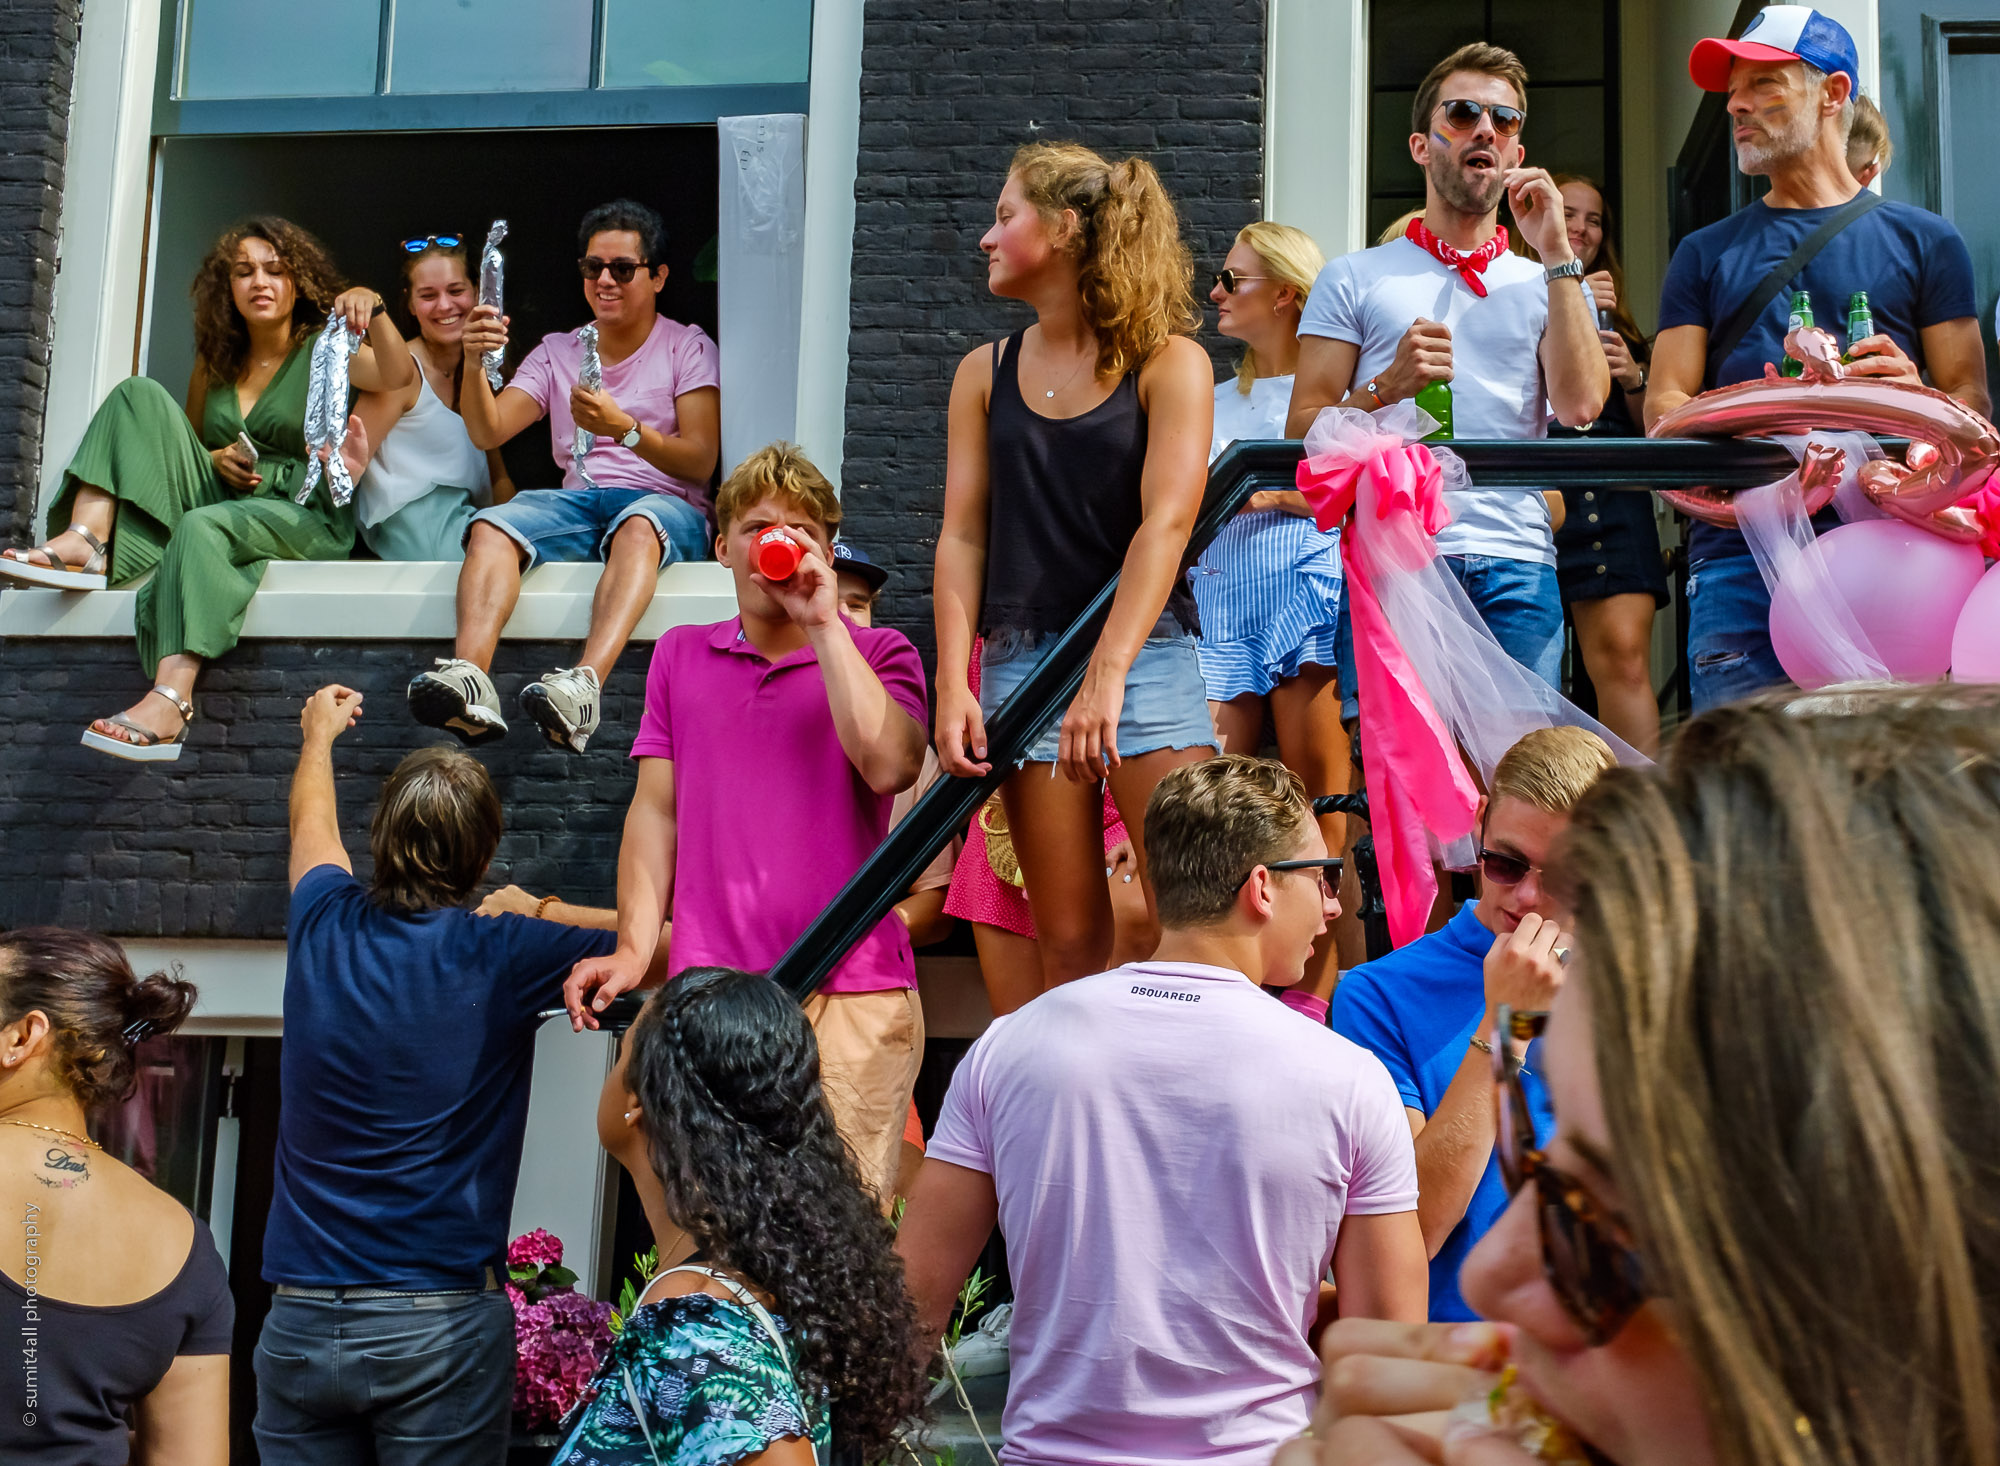 Street Party during the Gay Pride Day, Amsterdam